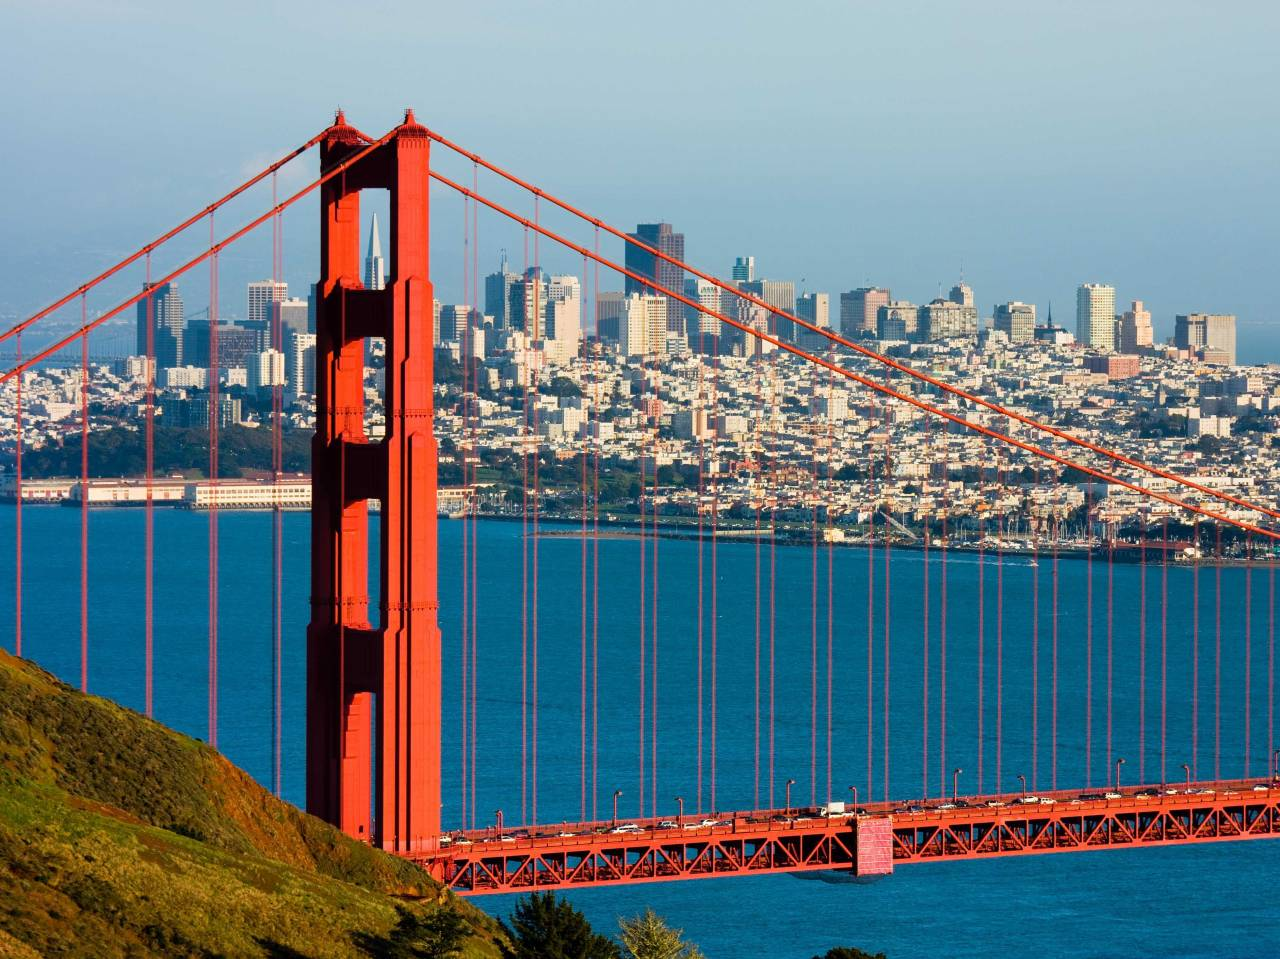 A picture of the Golden Gate Bridge during the day. San Francisco can be seen in the background